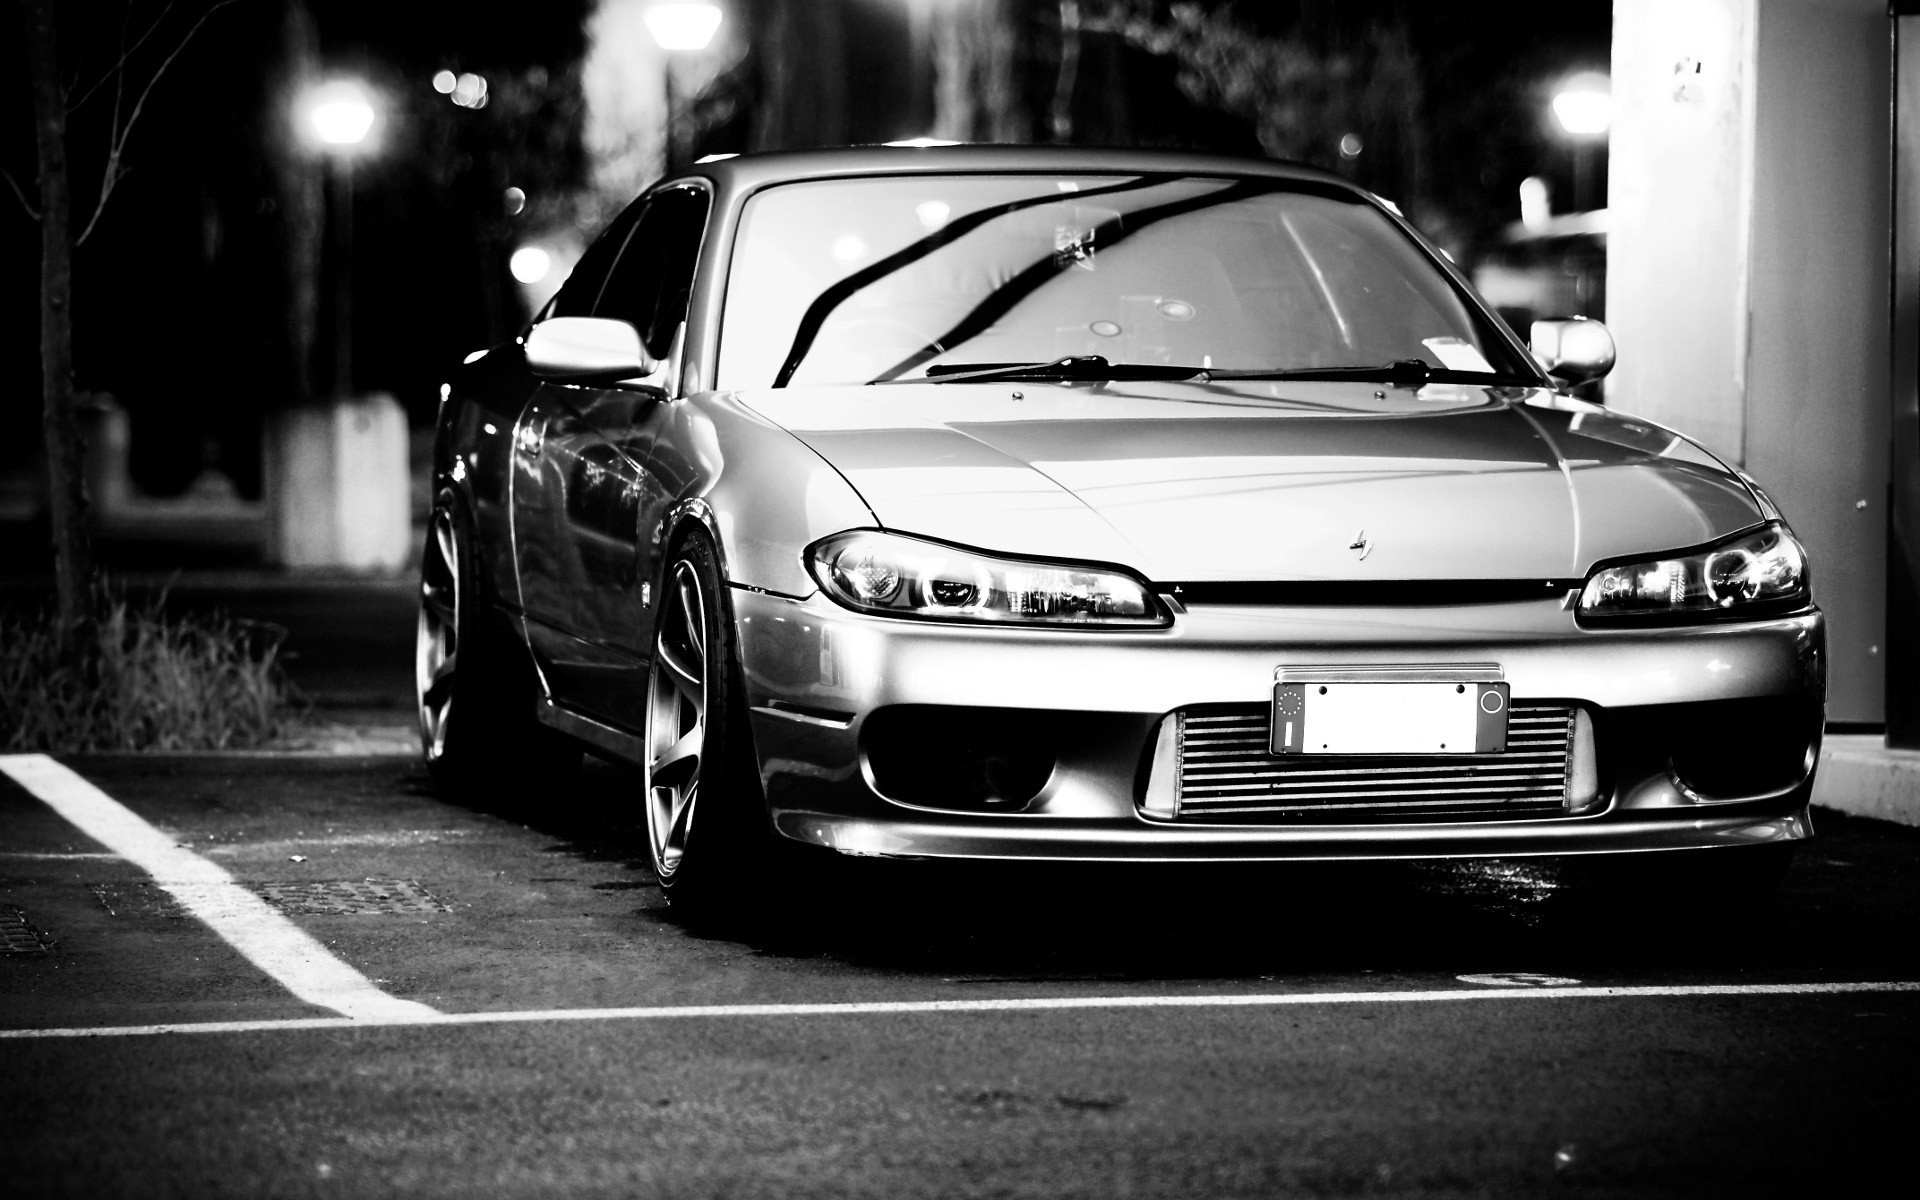 Cars Monochrome Nissan Silvia S15 Jdm Wallpaper Nissan Silvia S15 234613 Hd Wallpaper Backgrounds Download